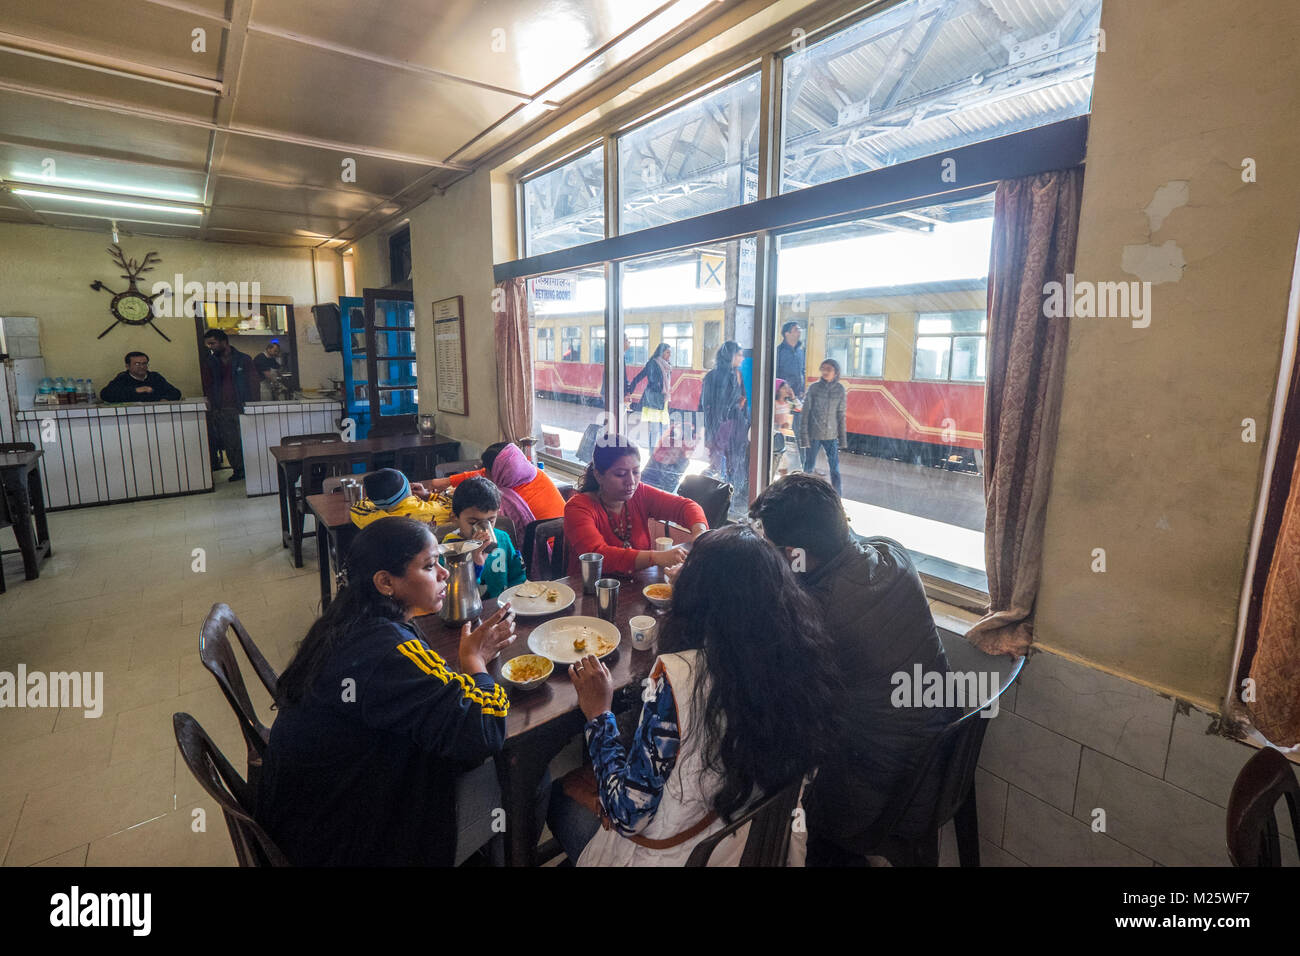 A family eating in the station cafe / canteen at Shimla station, India - Stock Image